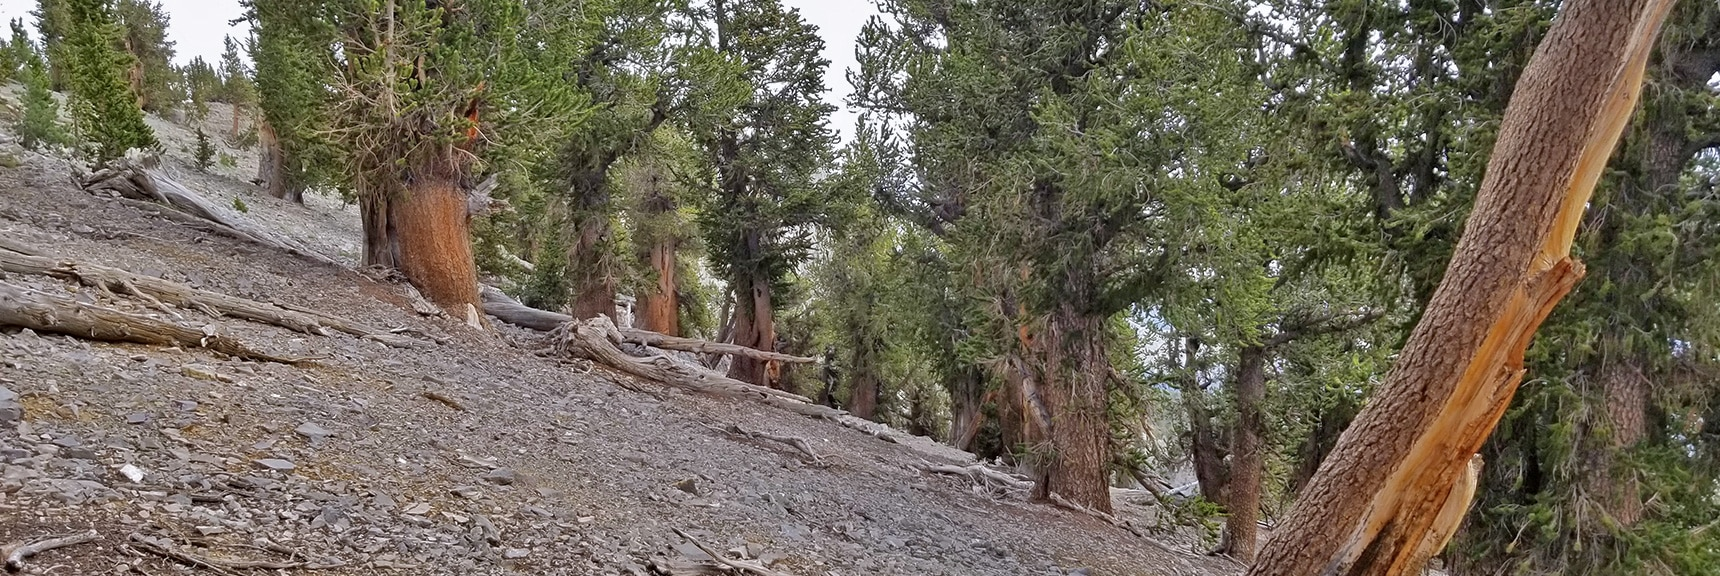 Searching for the Location of the NE Cliff Chute Entrance | Mummy Mountain NE Cliffs Descent | Mt Charleston Wilderness | Spring Mountains, Nevada